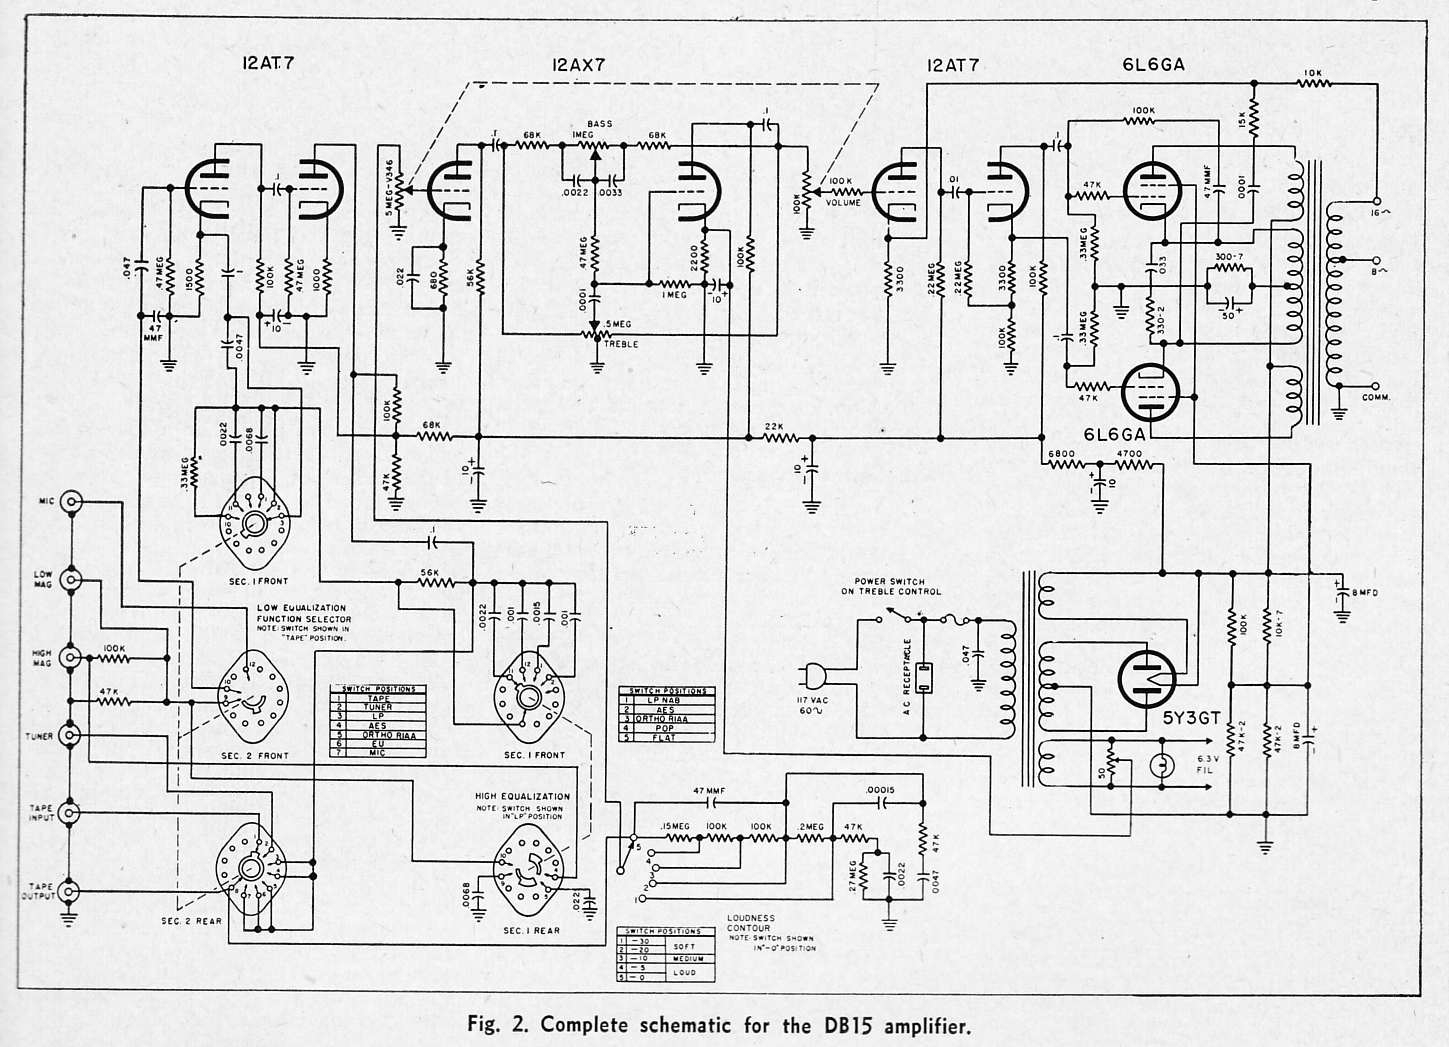 bogen paging system wiring diagram Download-Bogen Paging System Wiring Diagram Fresh May 2011 10-m